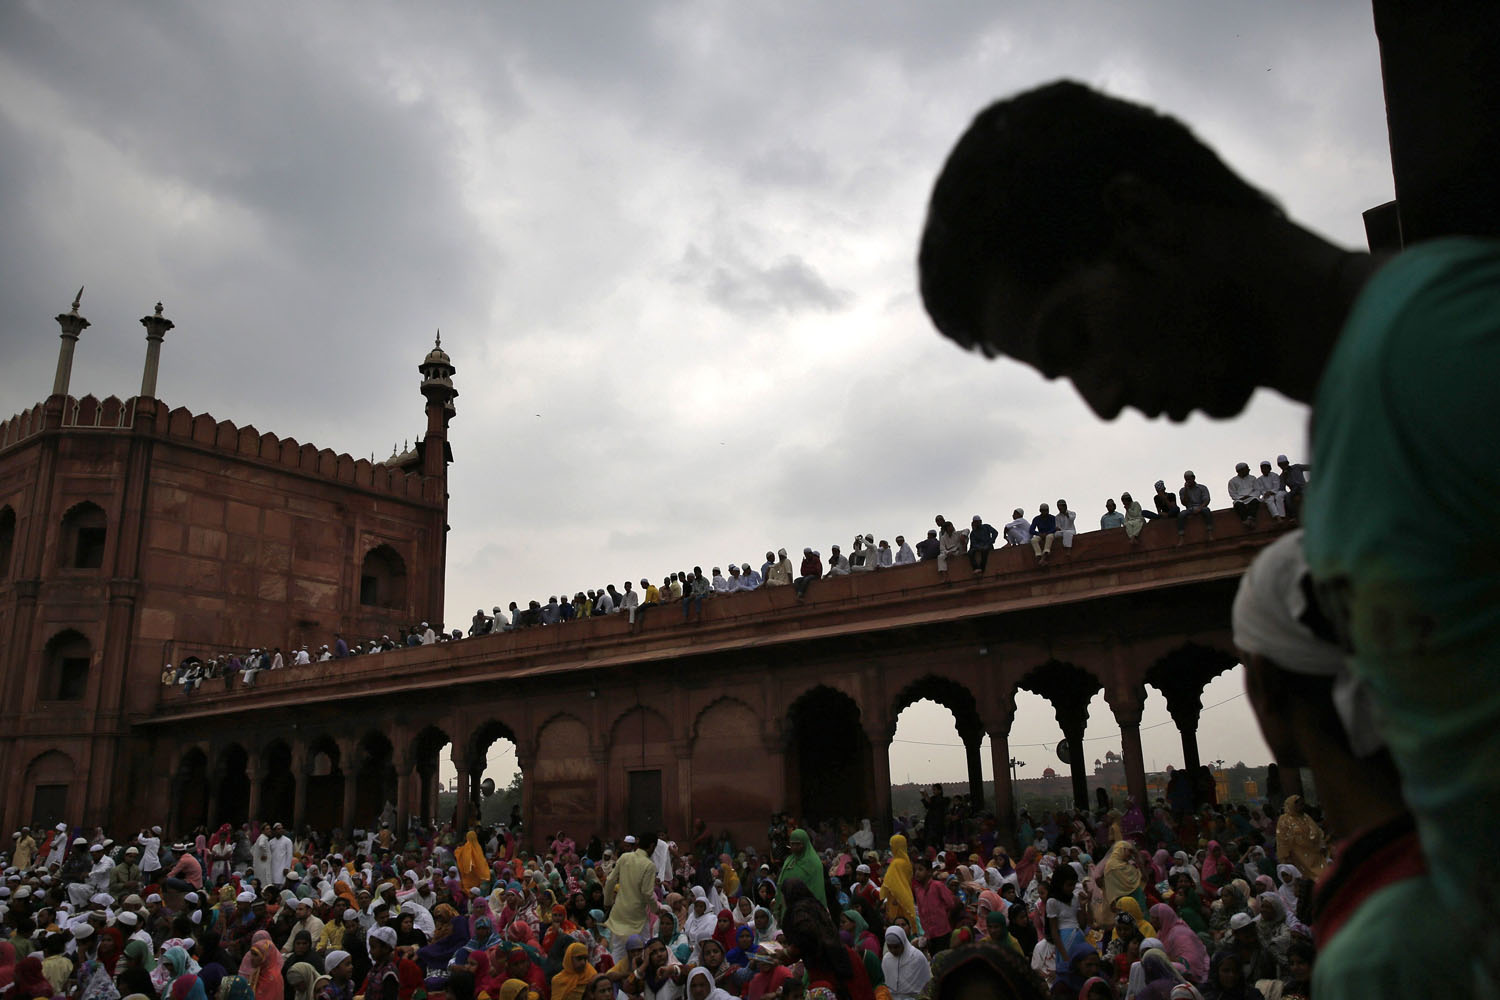 Jul. 25, 2014.Muslims sit inside the compound of Jama Masjid (Grand Mosque) before the start of last Friday prayers of the holy fasting month of Ramadan in the old quarters of Delhi.